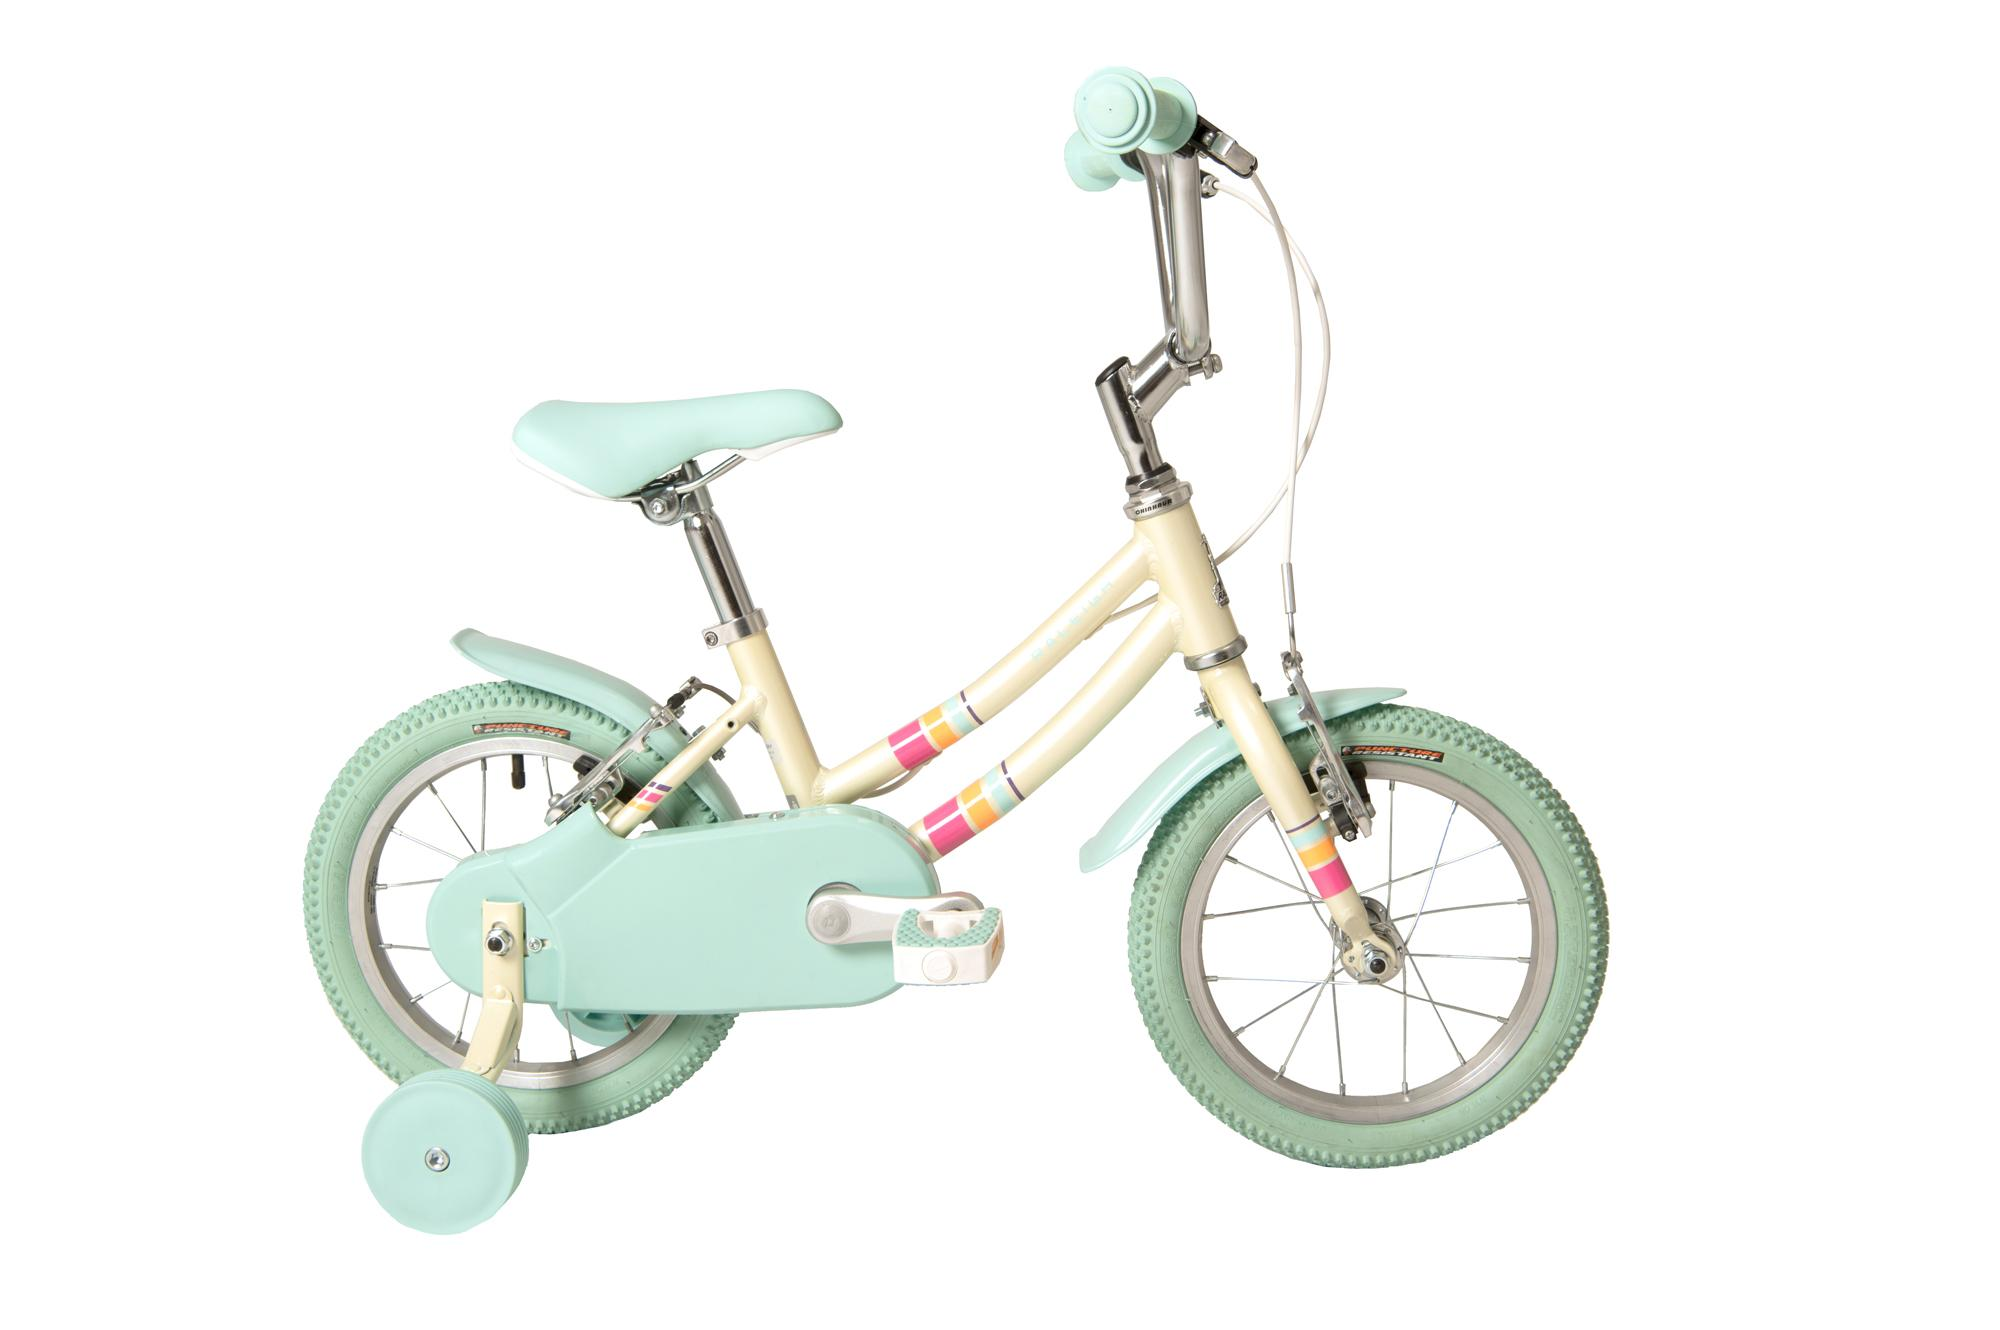 Raleigh Pop 14 inch kids bike for girls with stabilisers in white